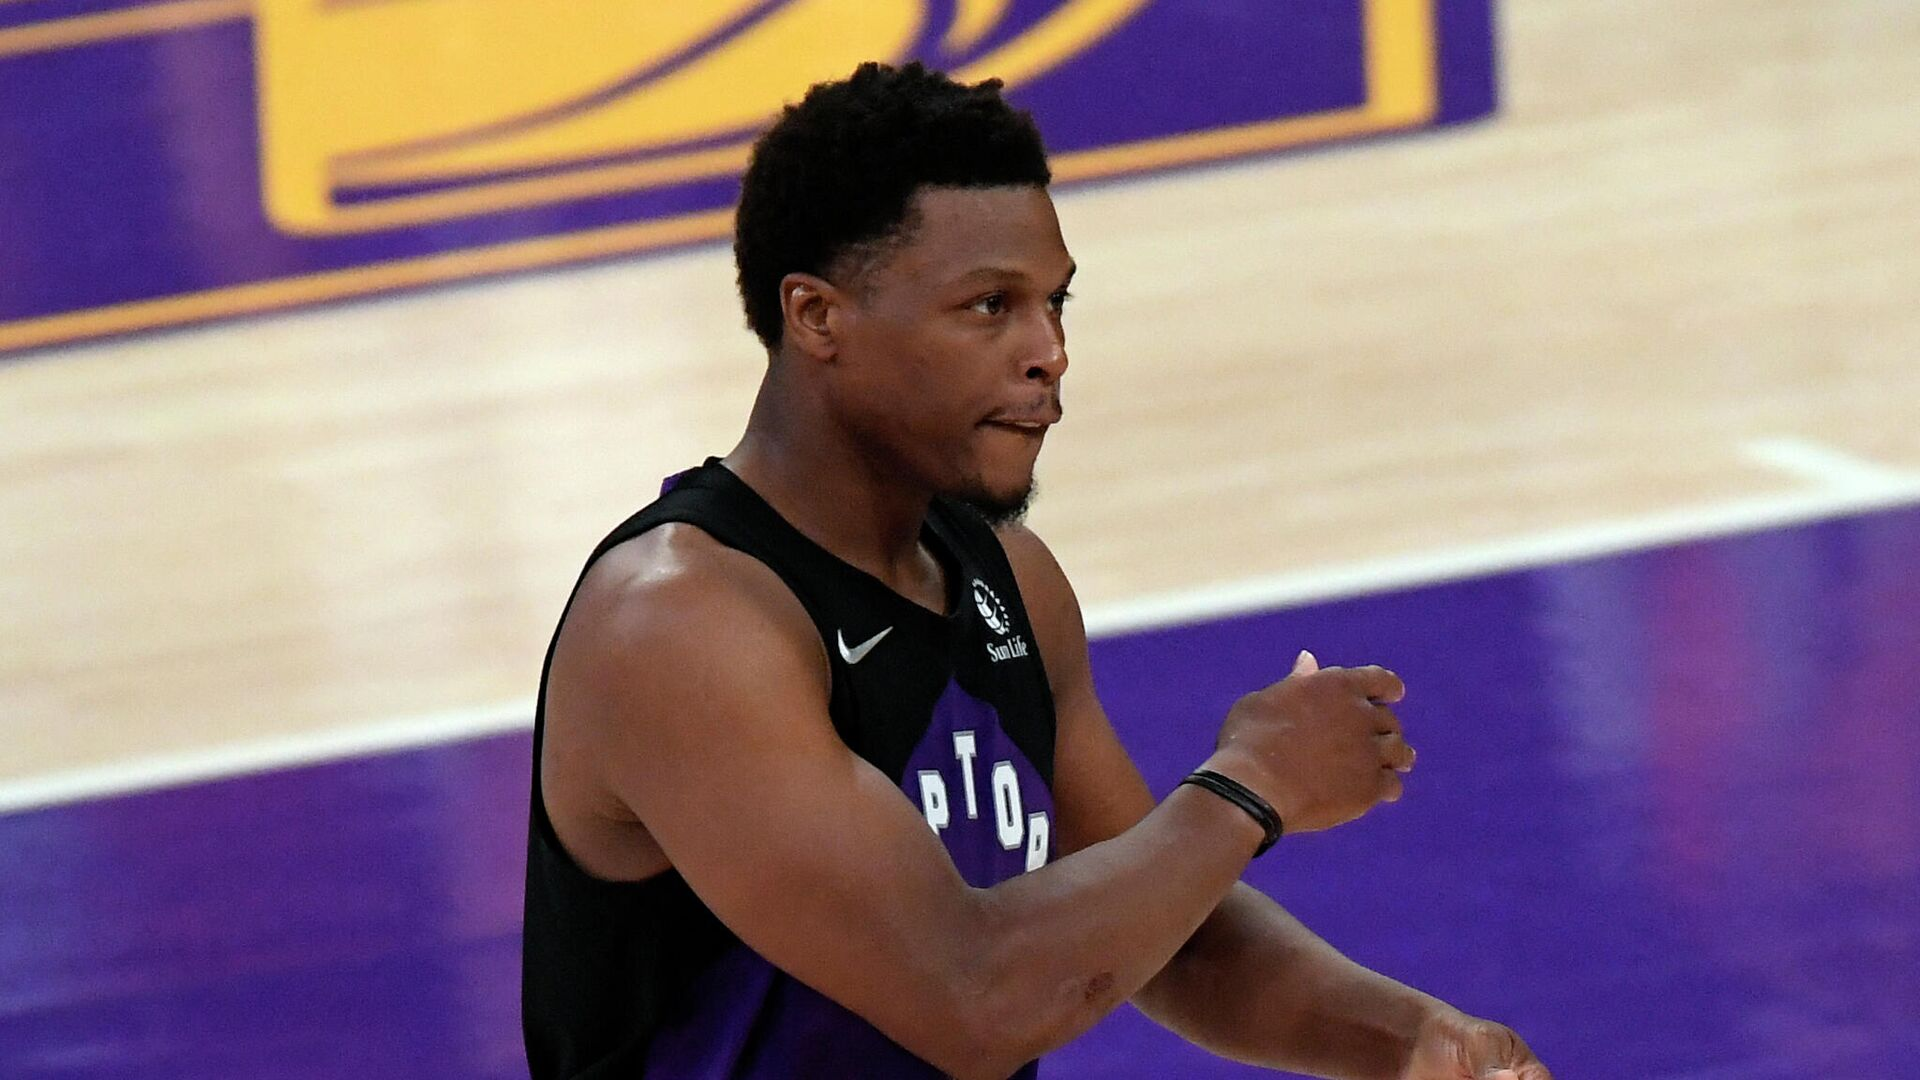 LOS ANGELES, CA - MAY 02: Kyle Lowry #7 of the Toronto Raptors celebrates after scoring a three point basket against the Los Angeles Lakers during the second half at Staples Center on May 2, 2021 in Los Angeles, California. NOTE TO USER: User expressly acknowledges and agrees that, by downloading and or using this photograph, User is consenting to the terms and conditions of the Getty Images License Agreement.   Kevork Djansezian/Getty Images/AFP (Photo by KEVORK DJANSEZIAN / GETTY IMAGES NORTH AMERICA / Getty Images via AFP) - РИА Новости, 1920, 03.08.2021